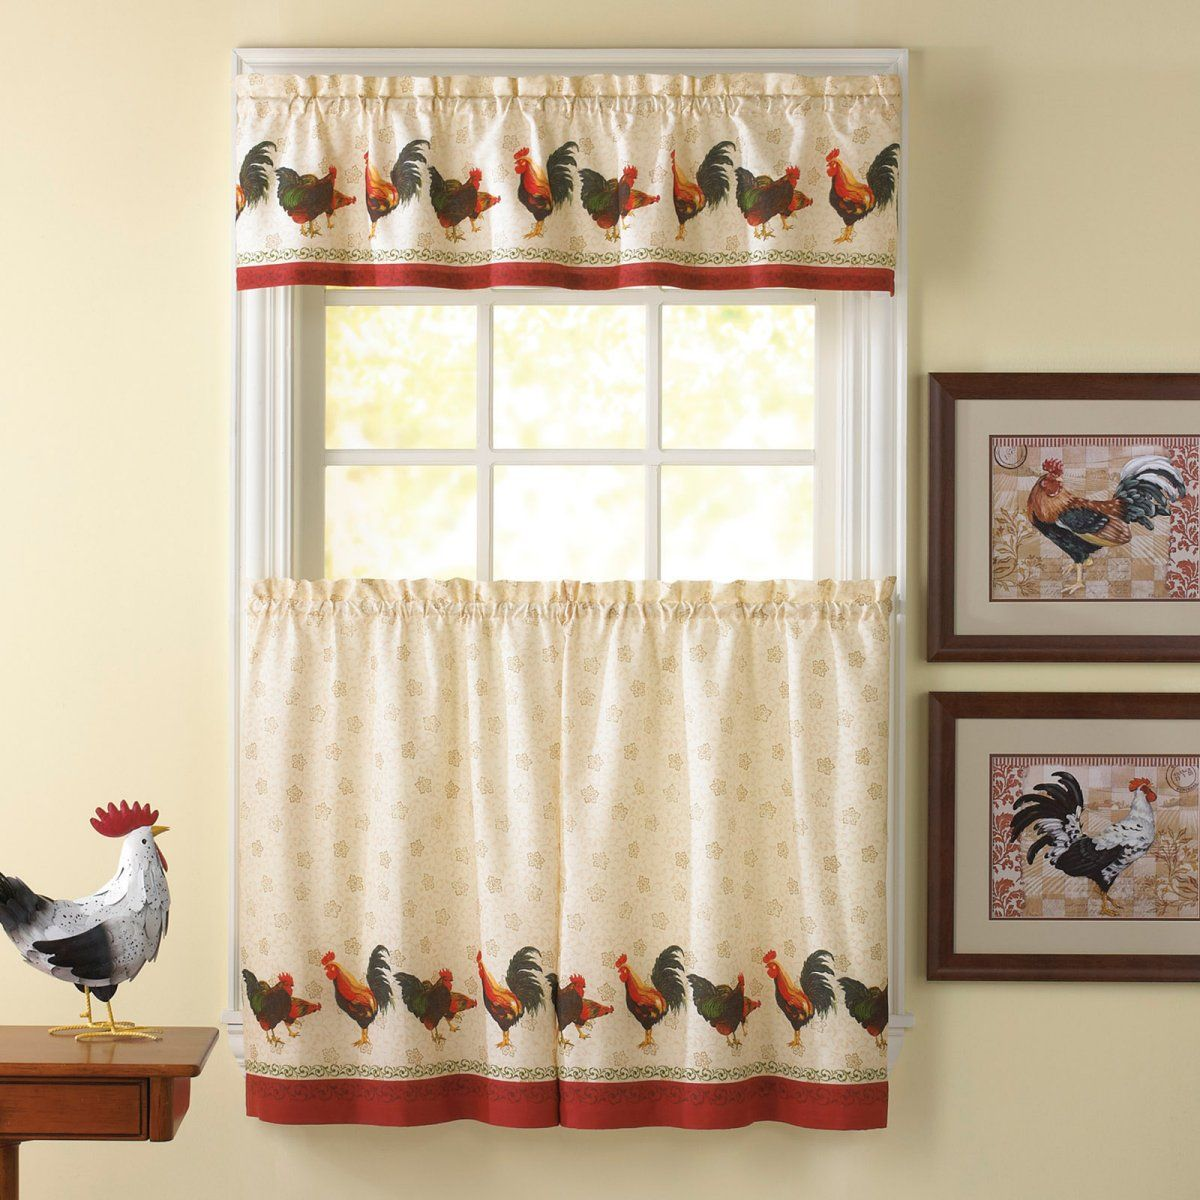 Awesome Kitchen Curtains Sets 1 Country Rooster Kitchen Curtain